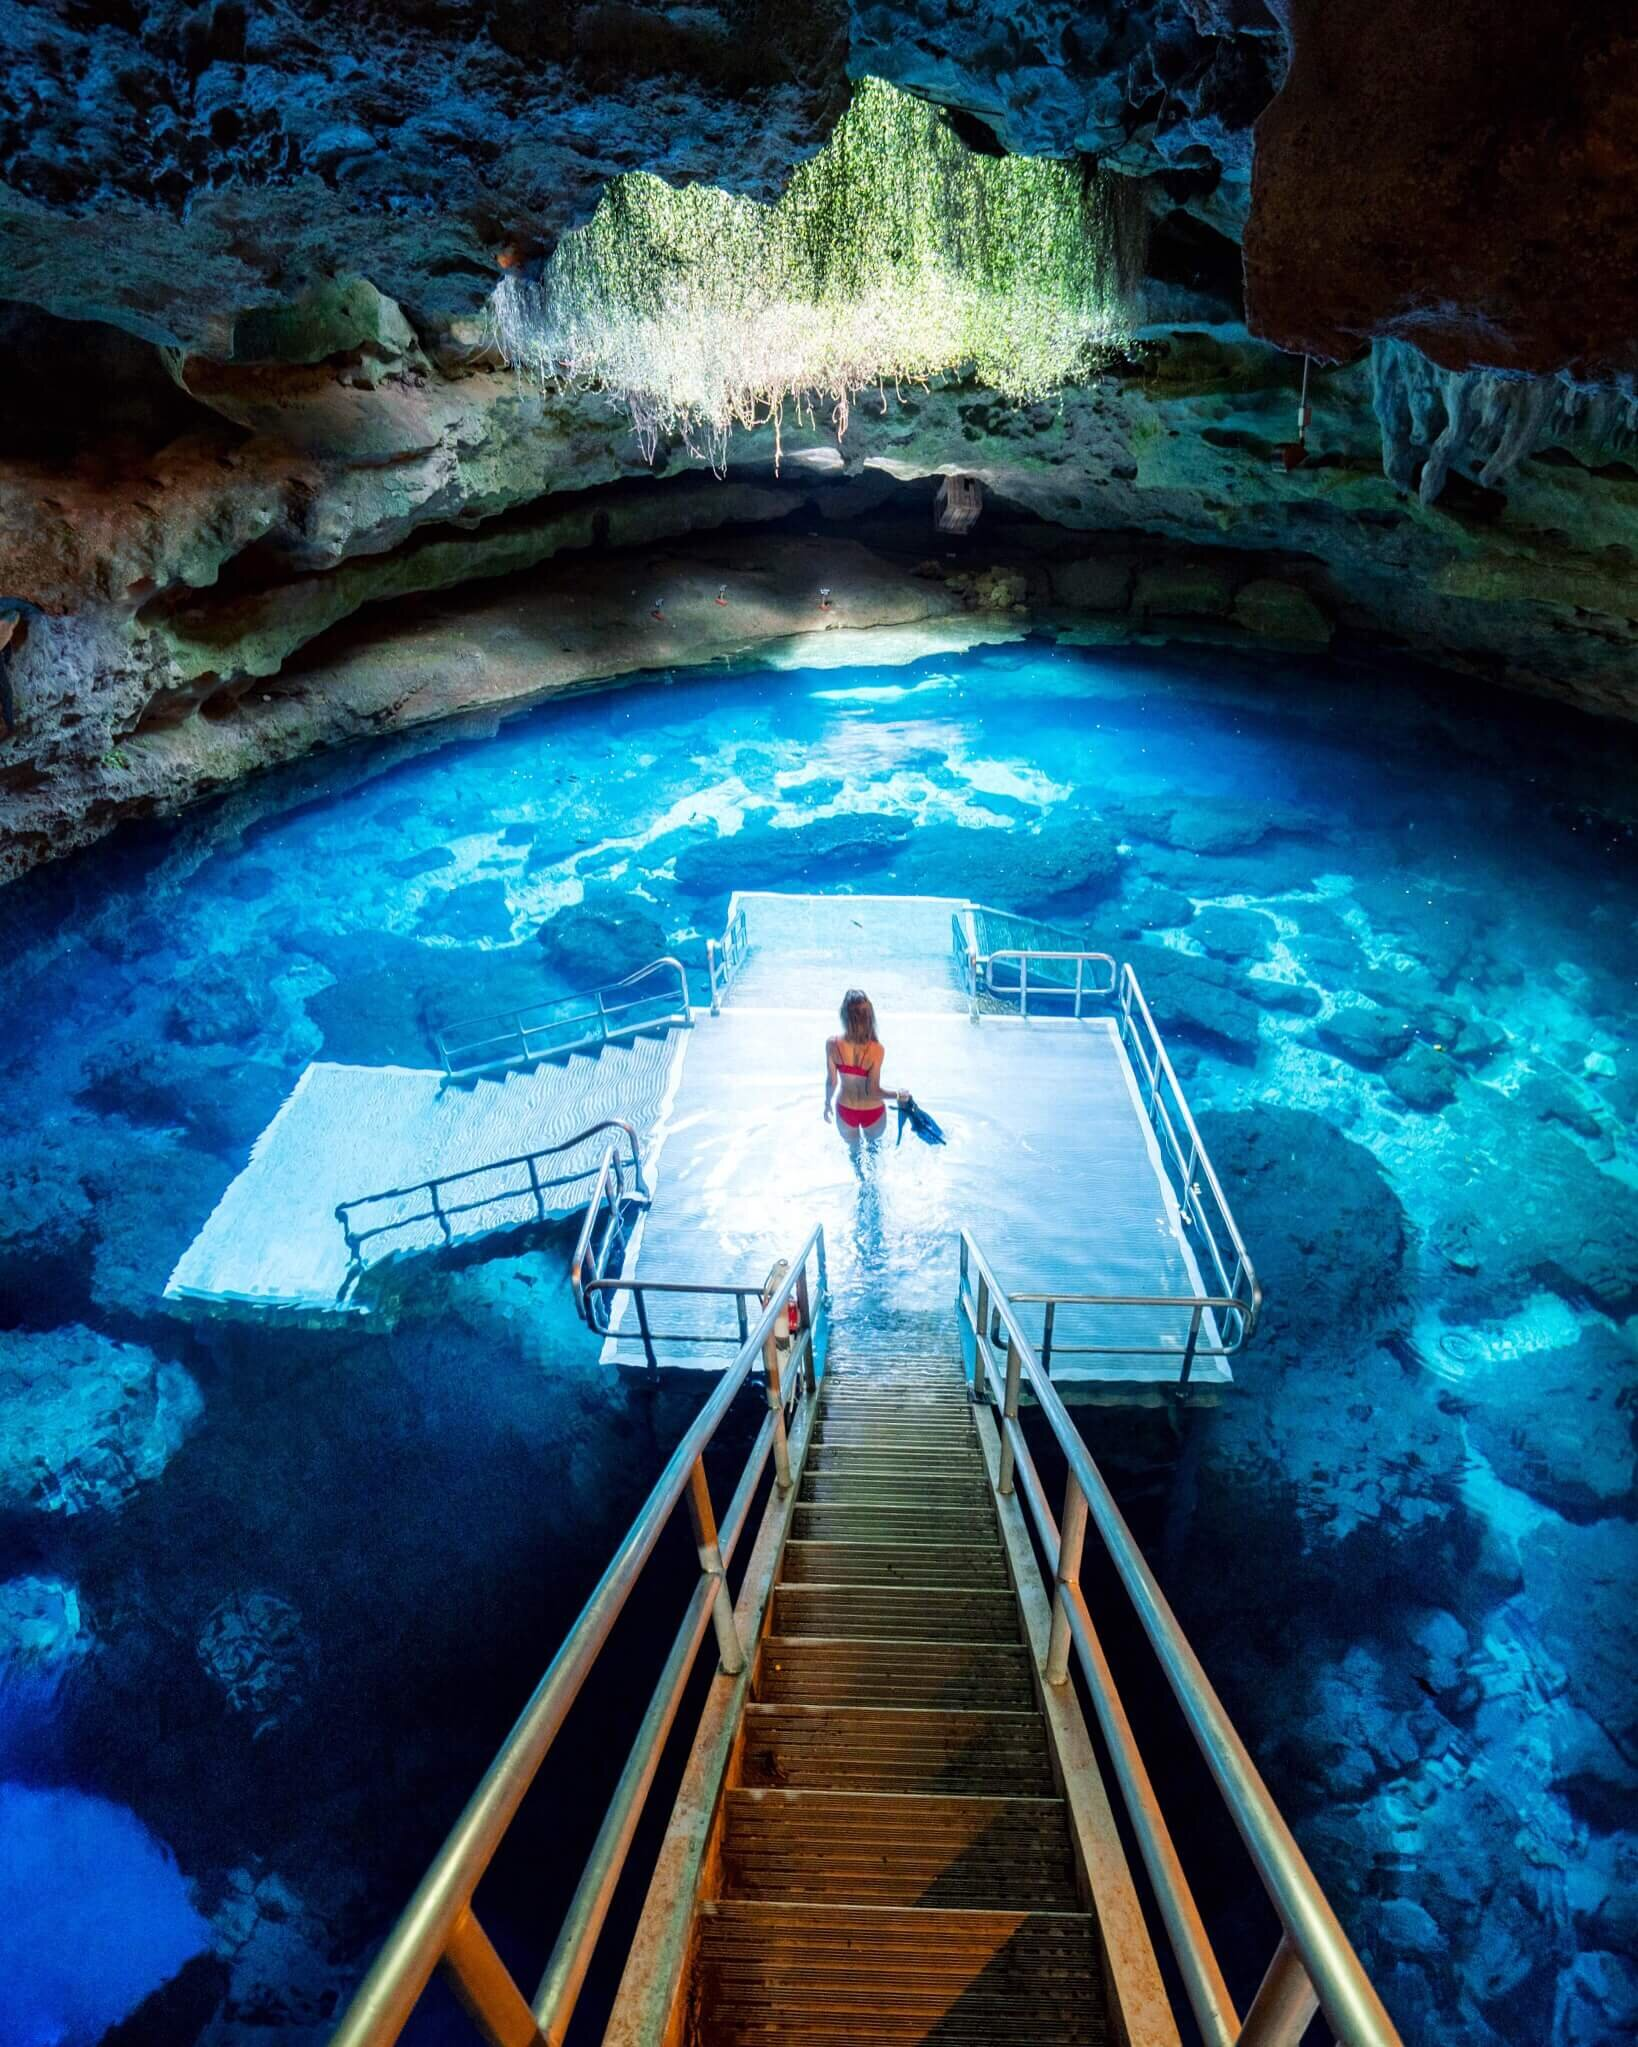 Resembling one of Mexico's cenotes, Devils Den is now a privately owned scuba training center.